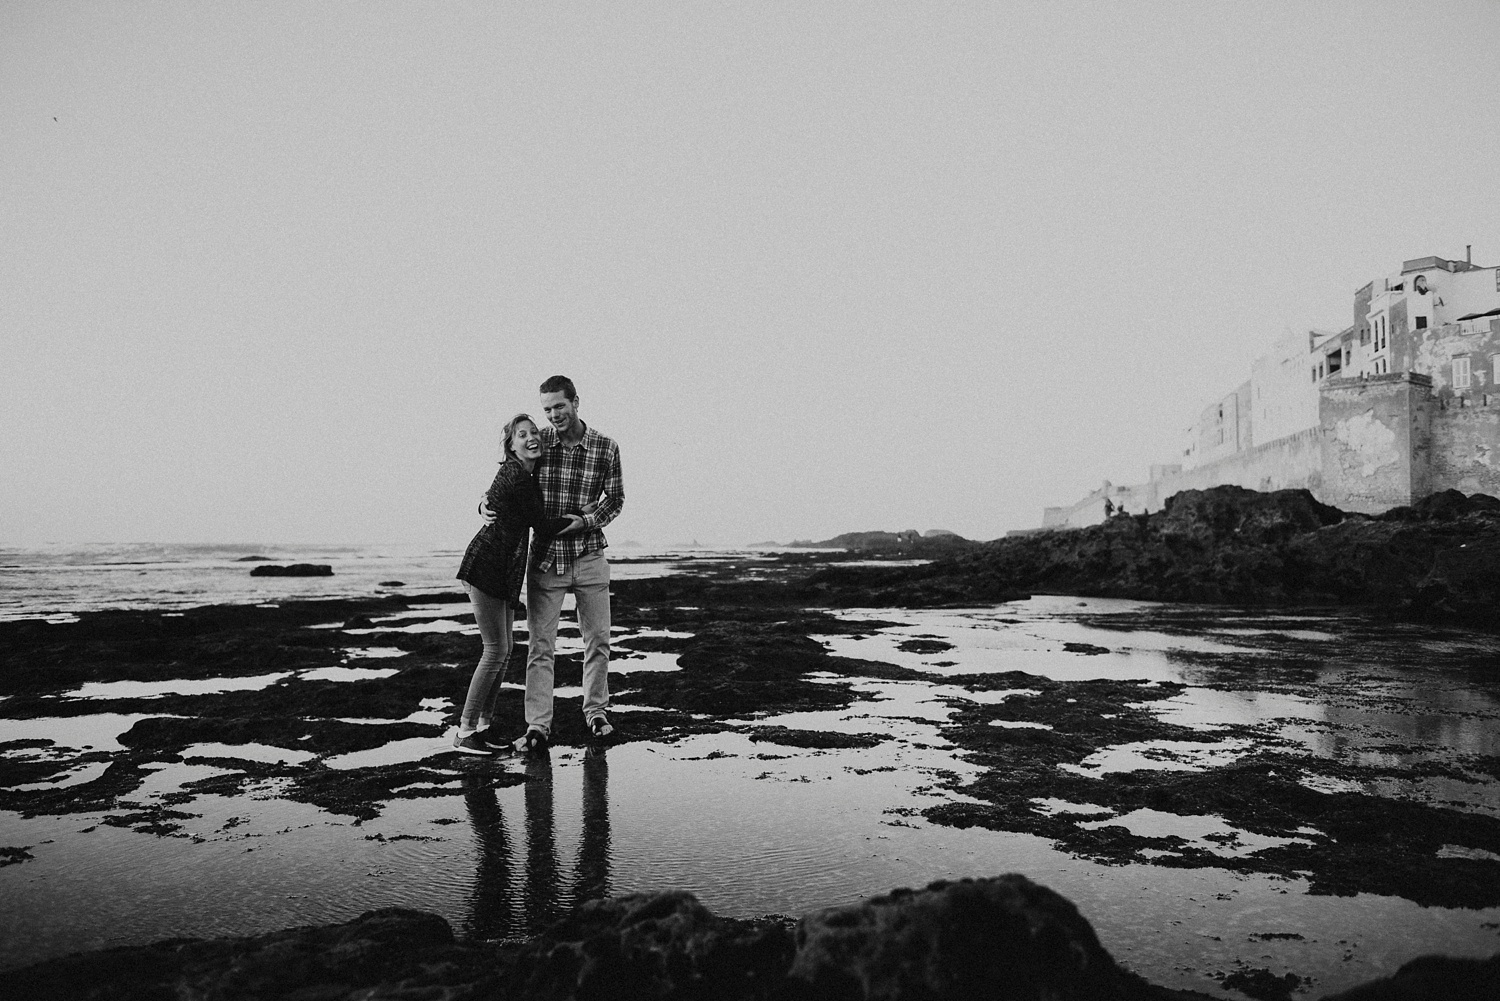 Nate-shepard-photography-engagment-destination-wedding-photographer-denver-morocco_0043.jpg